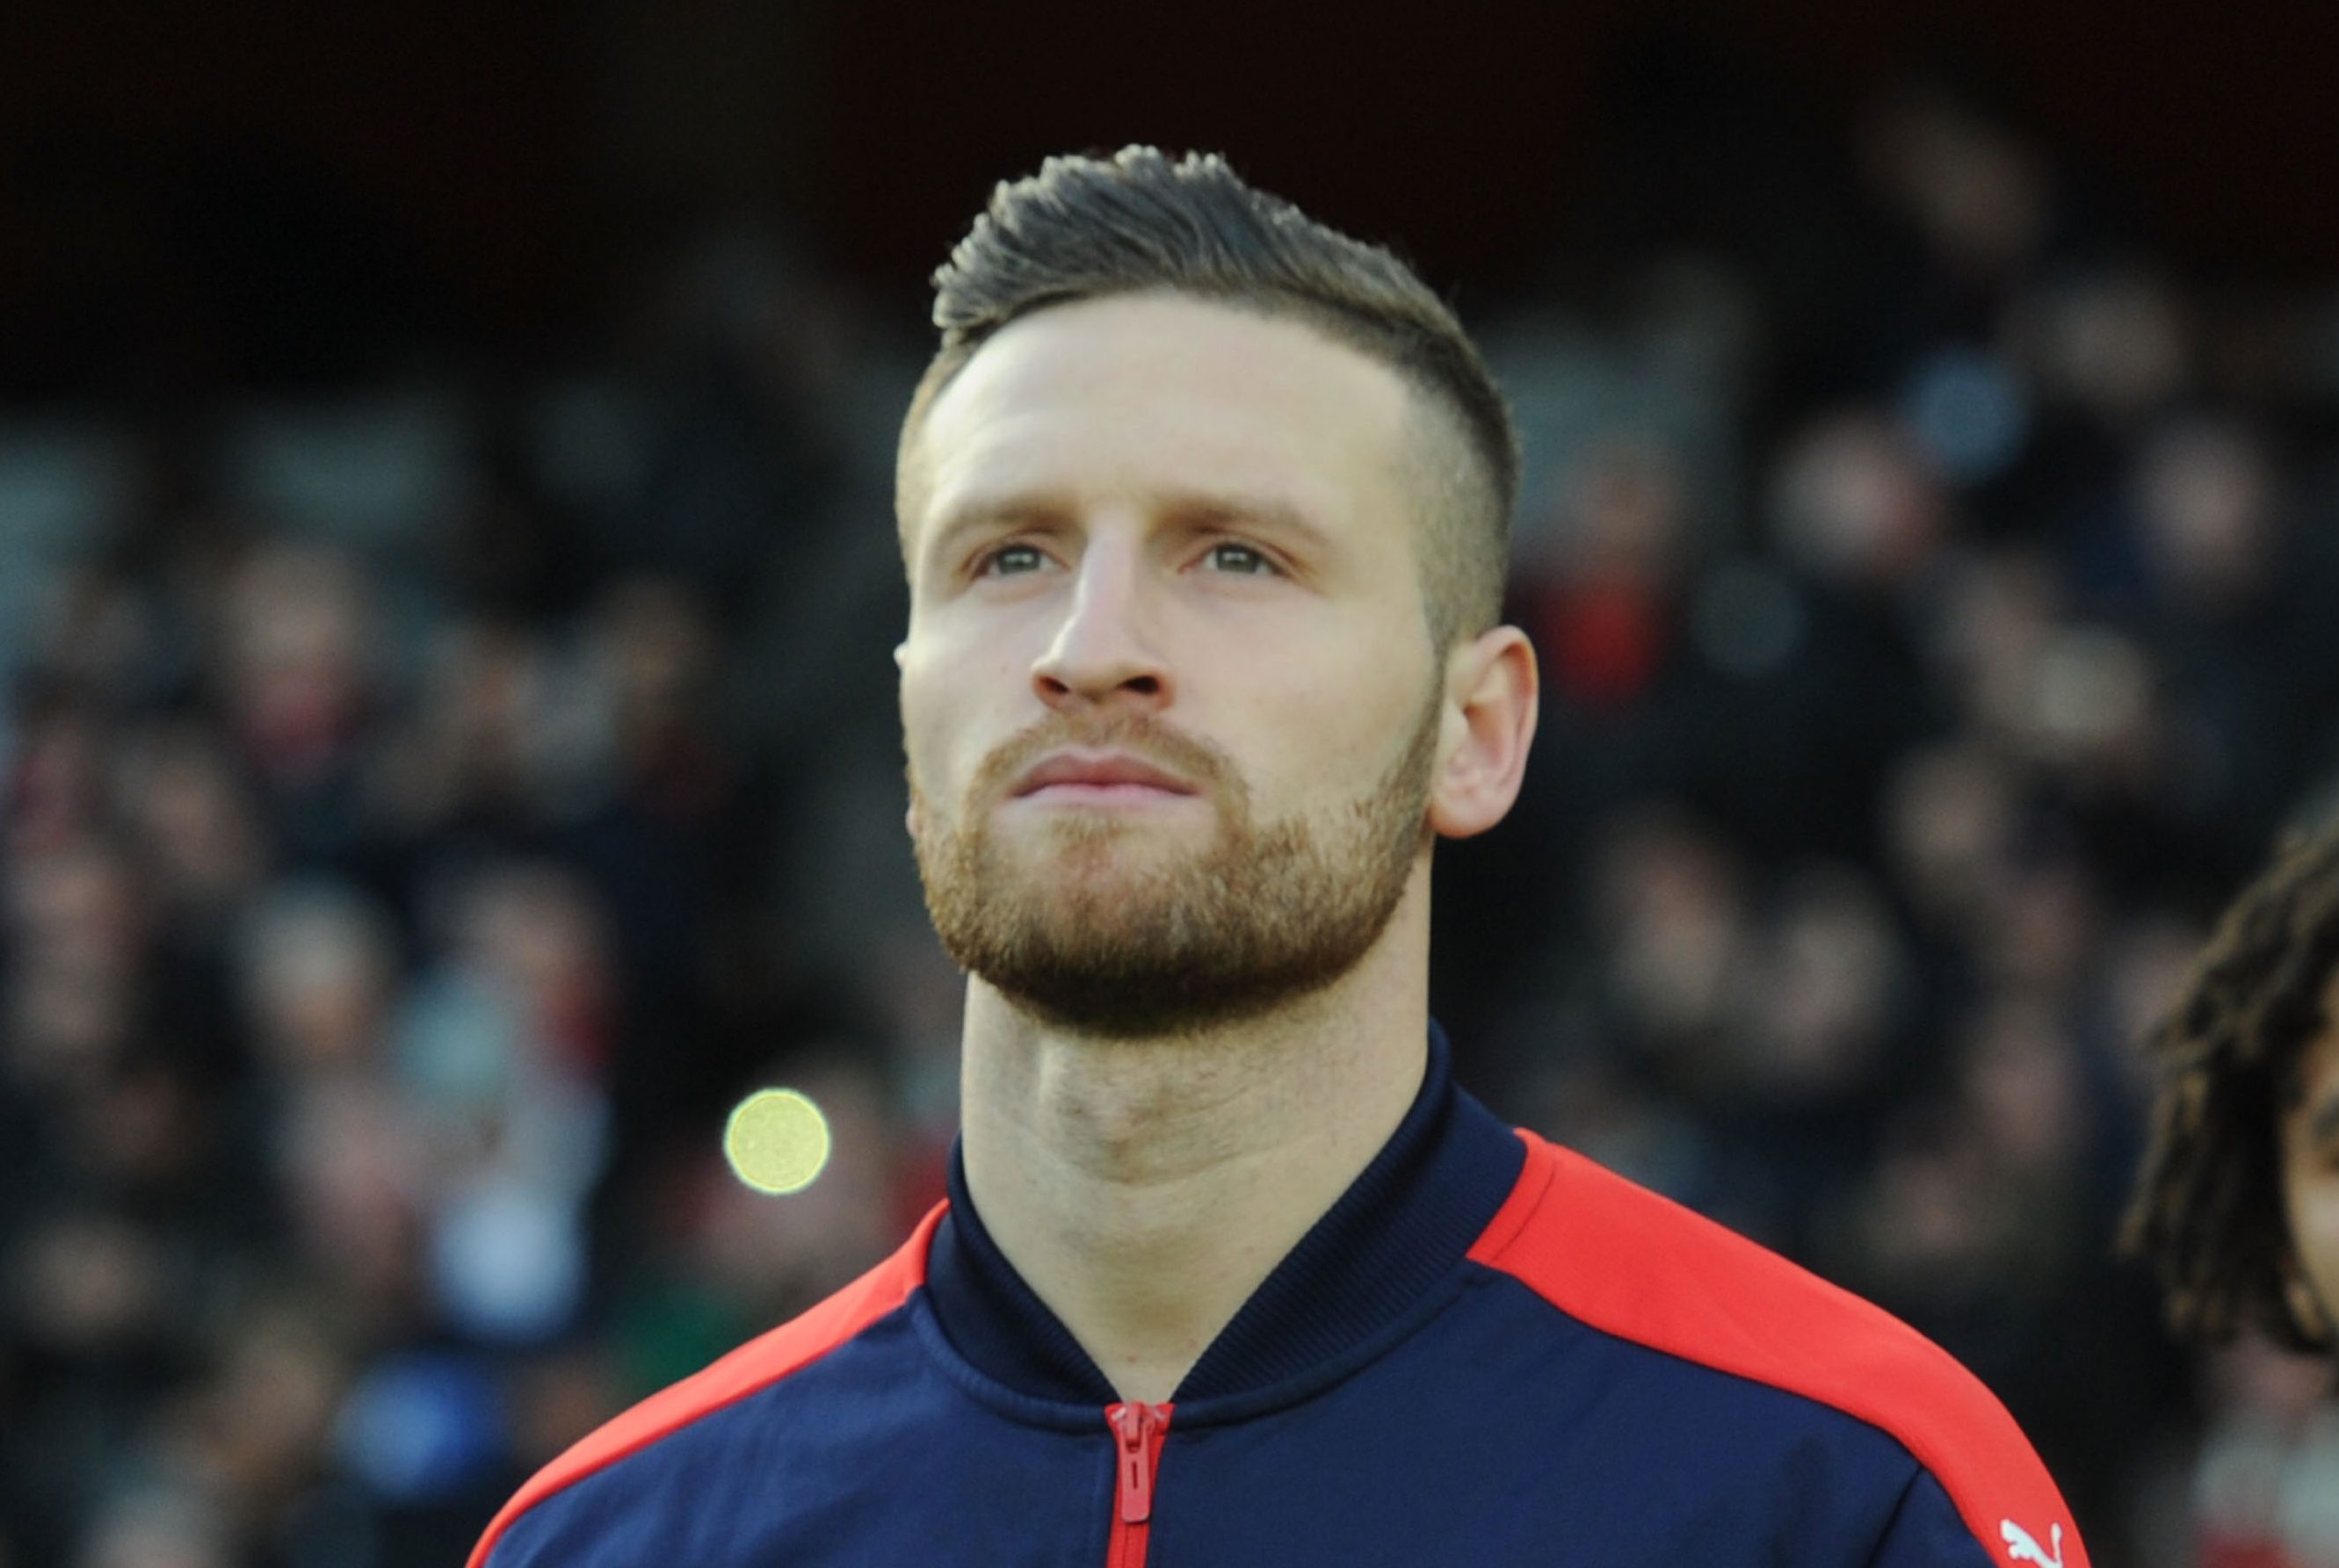 Arsenal's Shkodran Mustafi reveals trying to learn from Manchester United legend Gary Neville